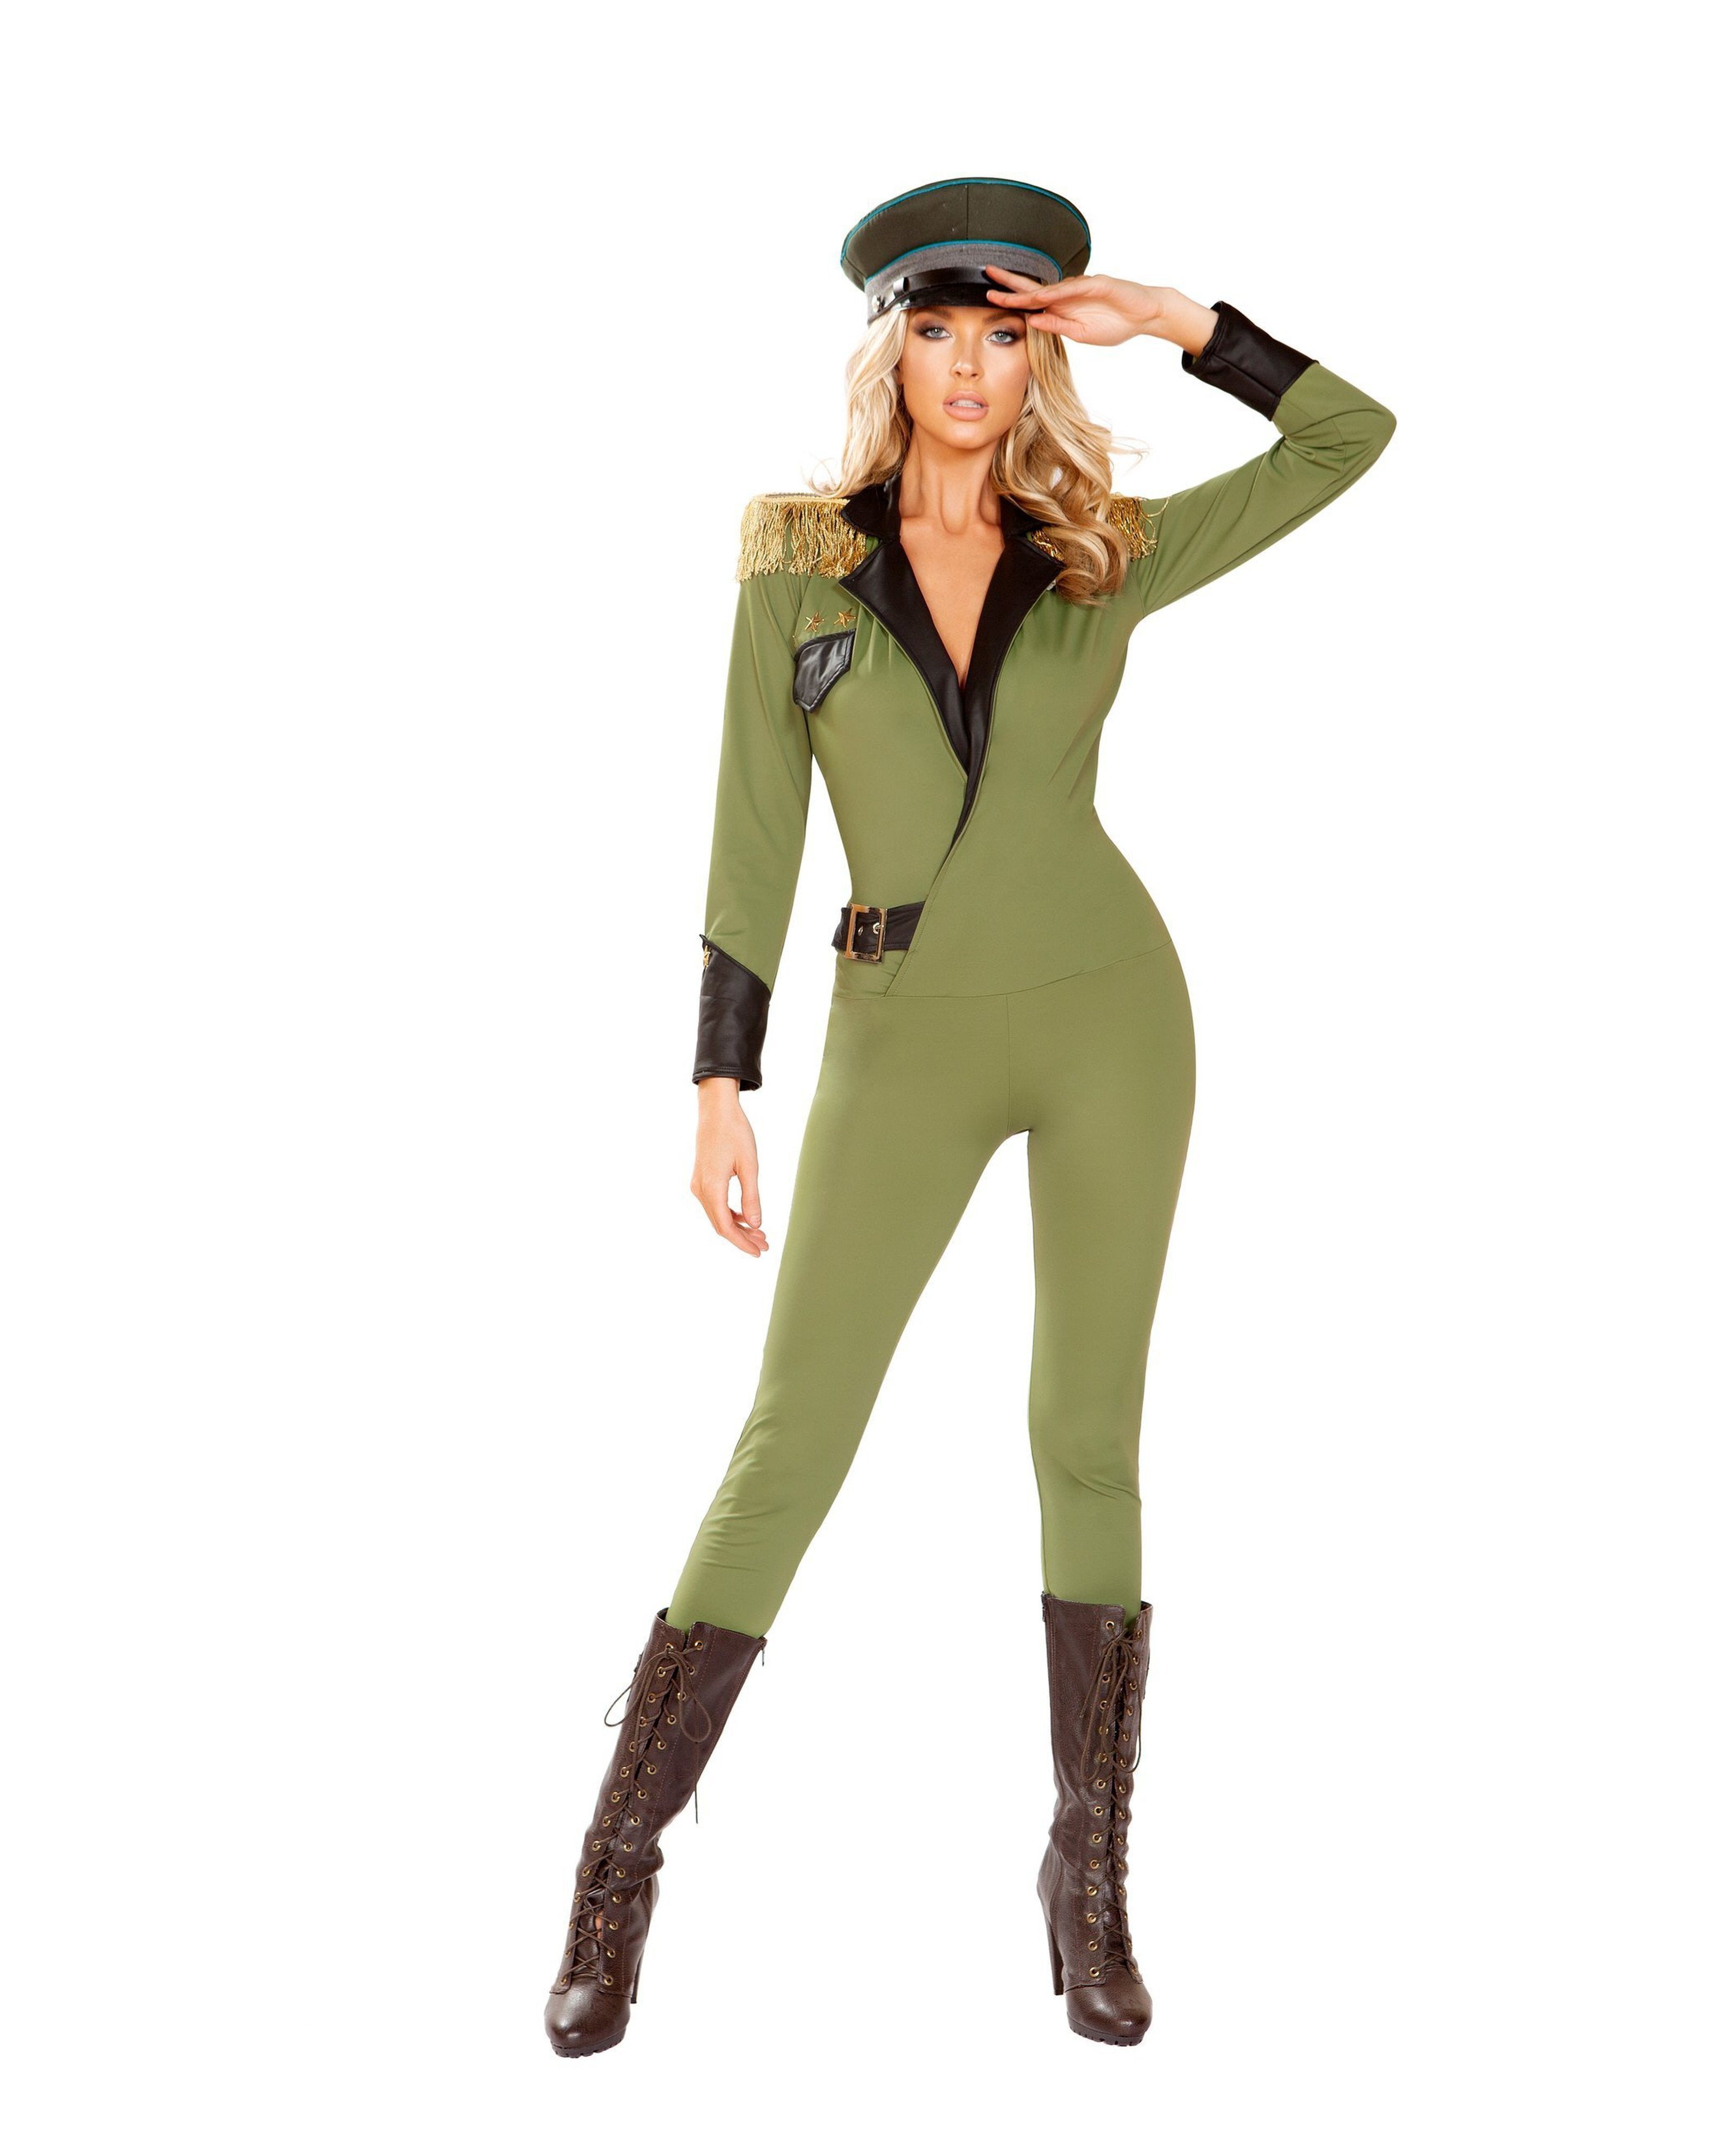 Military Army Babe Costume costumes Size Small/MediumColor GreenNakees